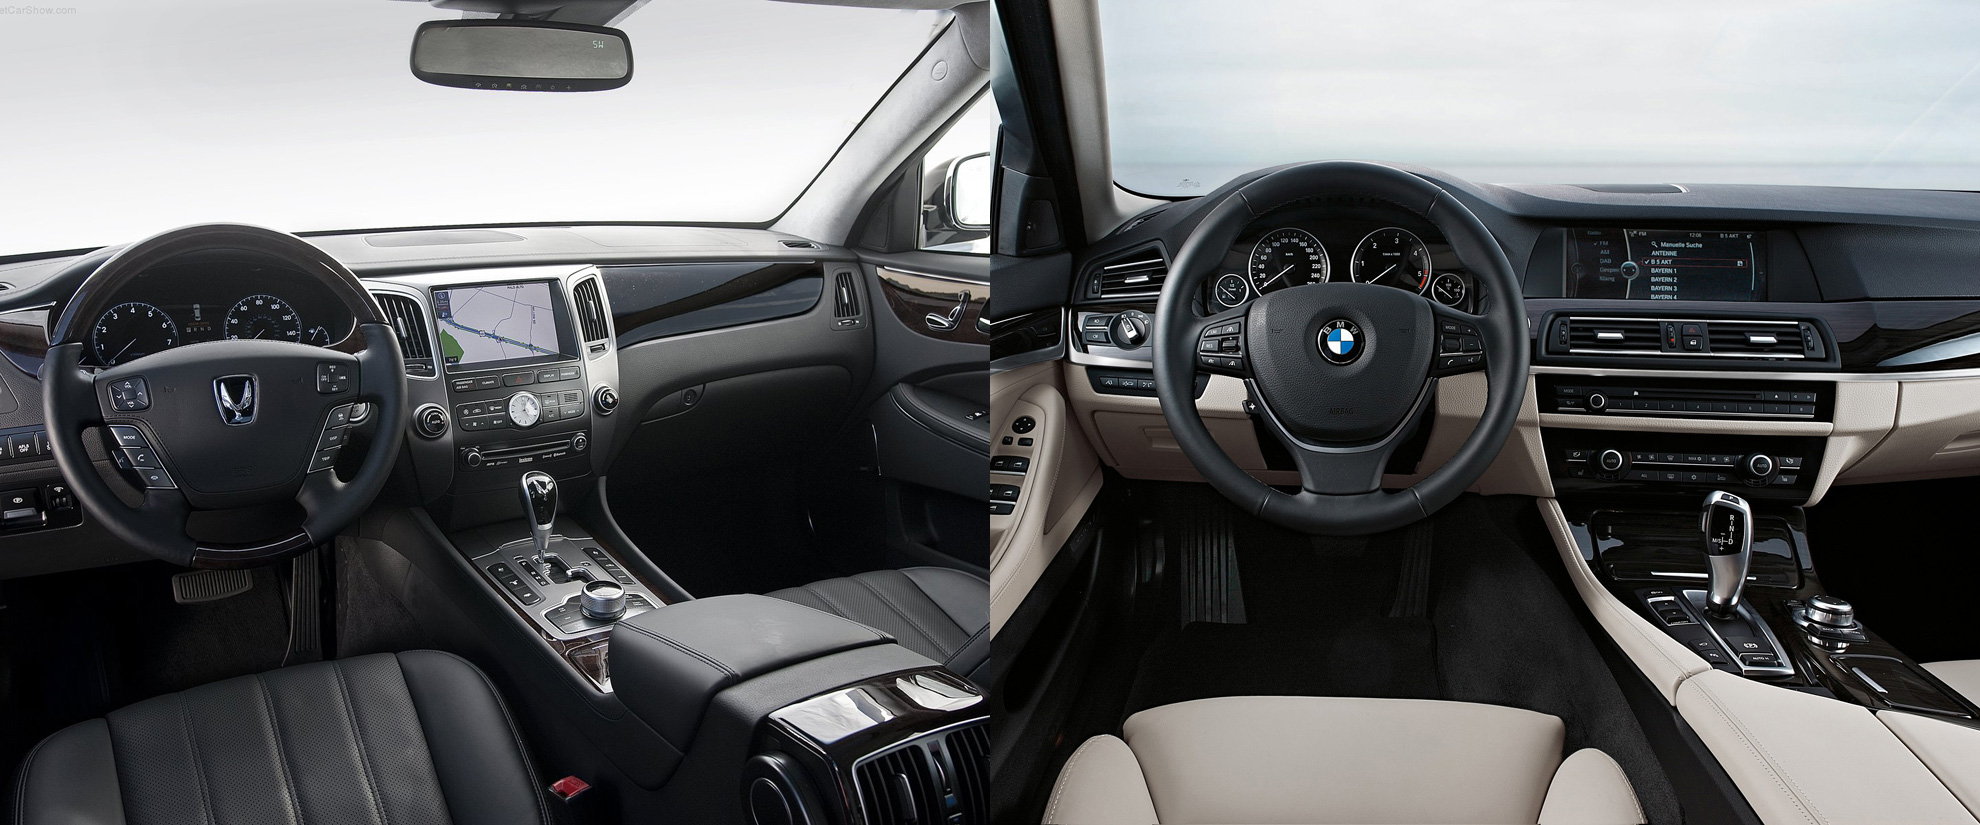 hyundai equus vs bmw 7 series interior